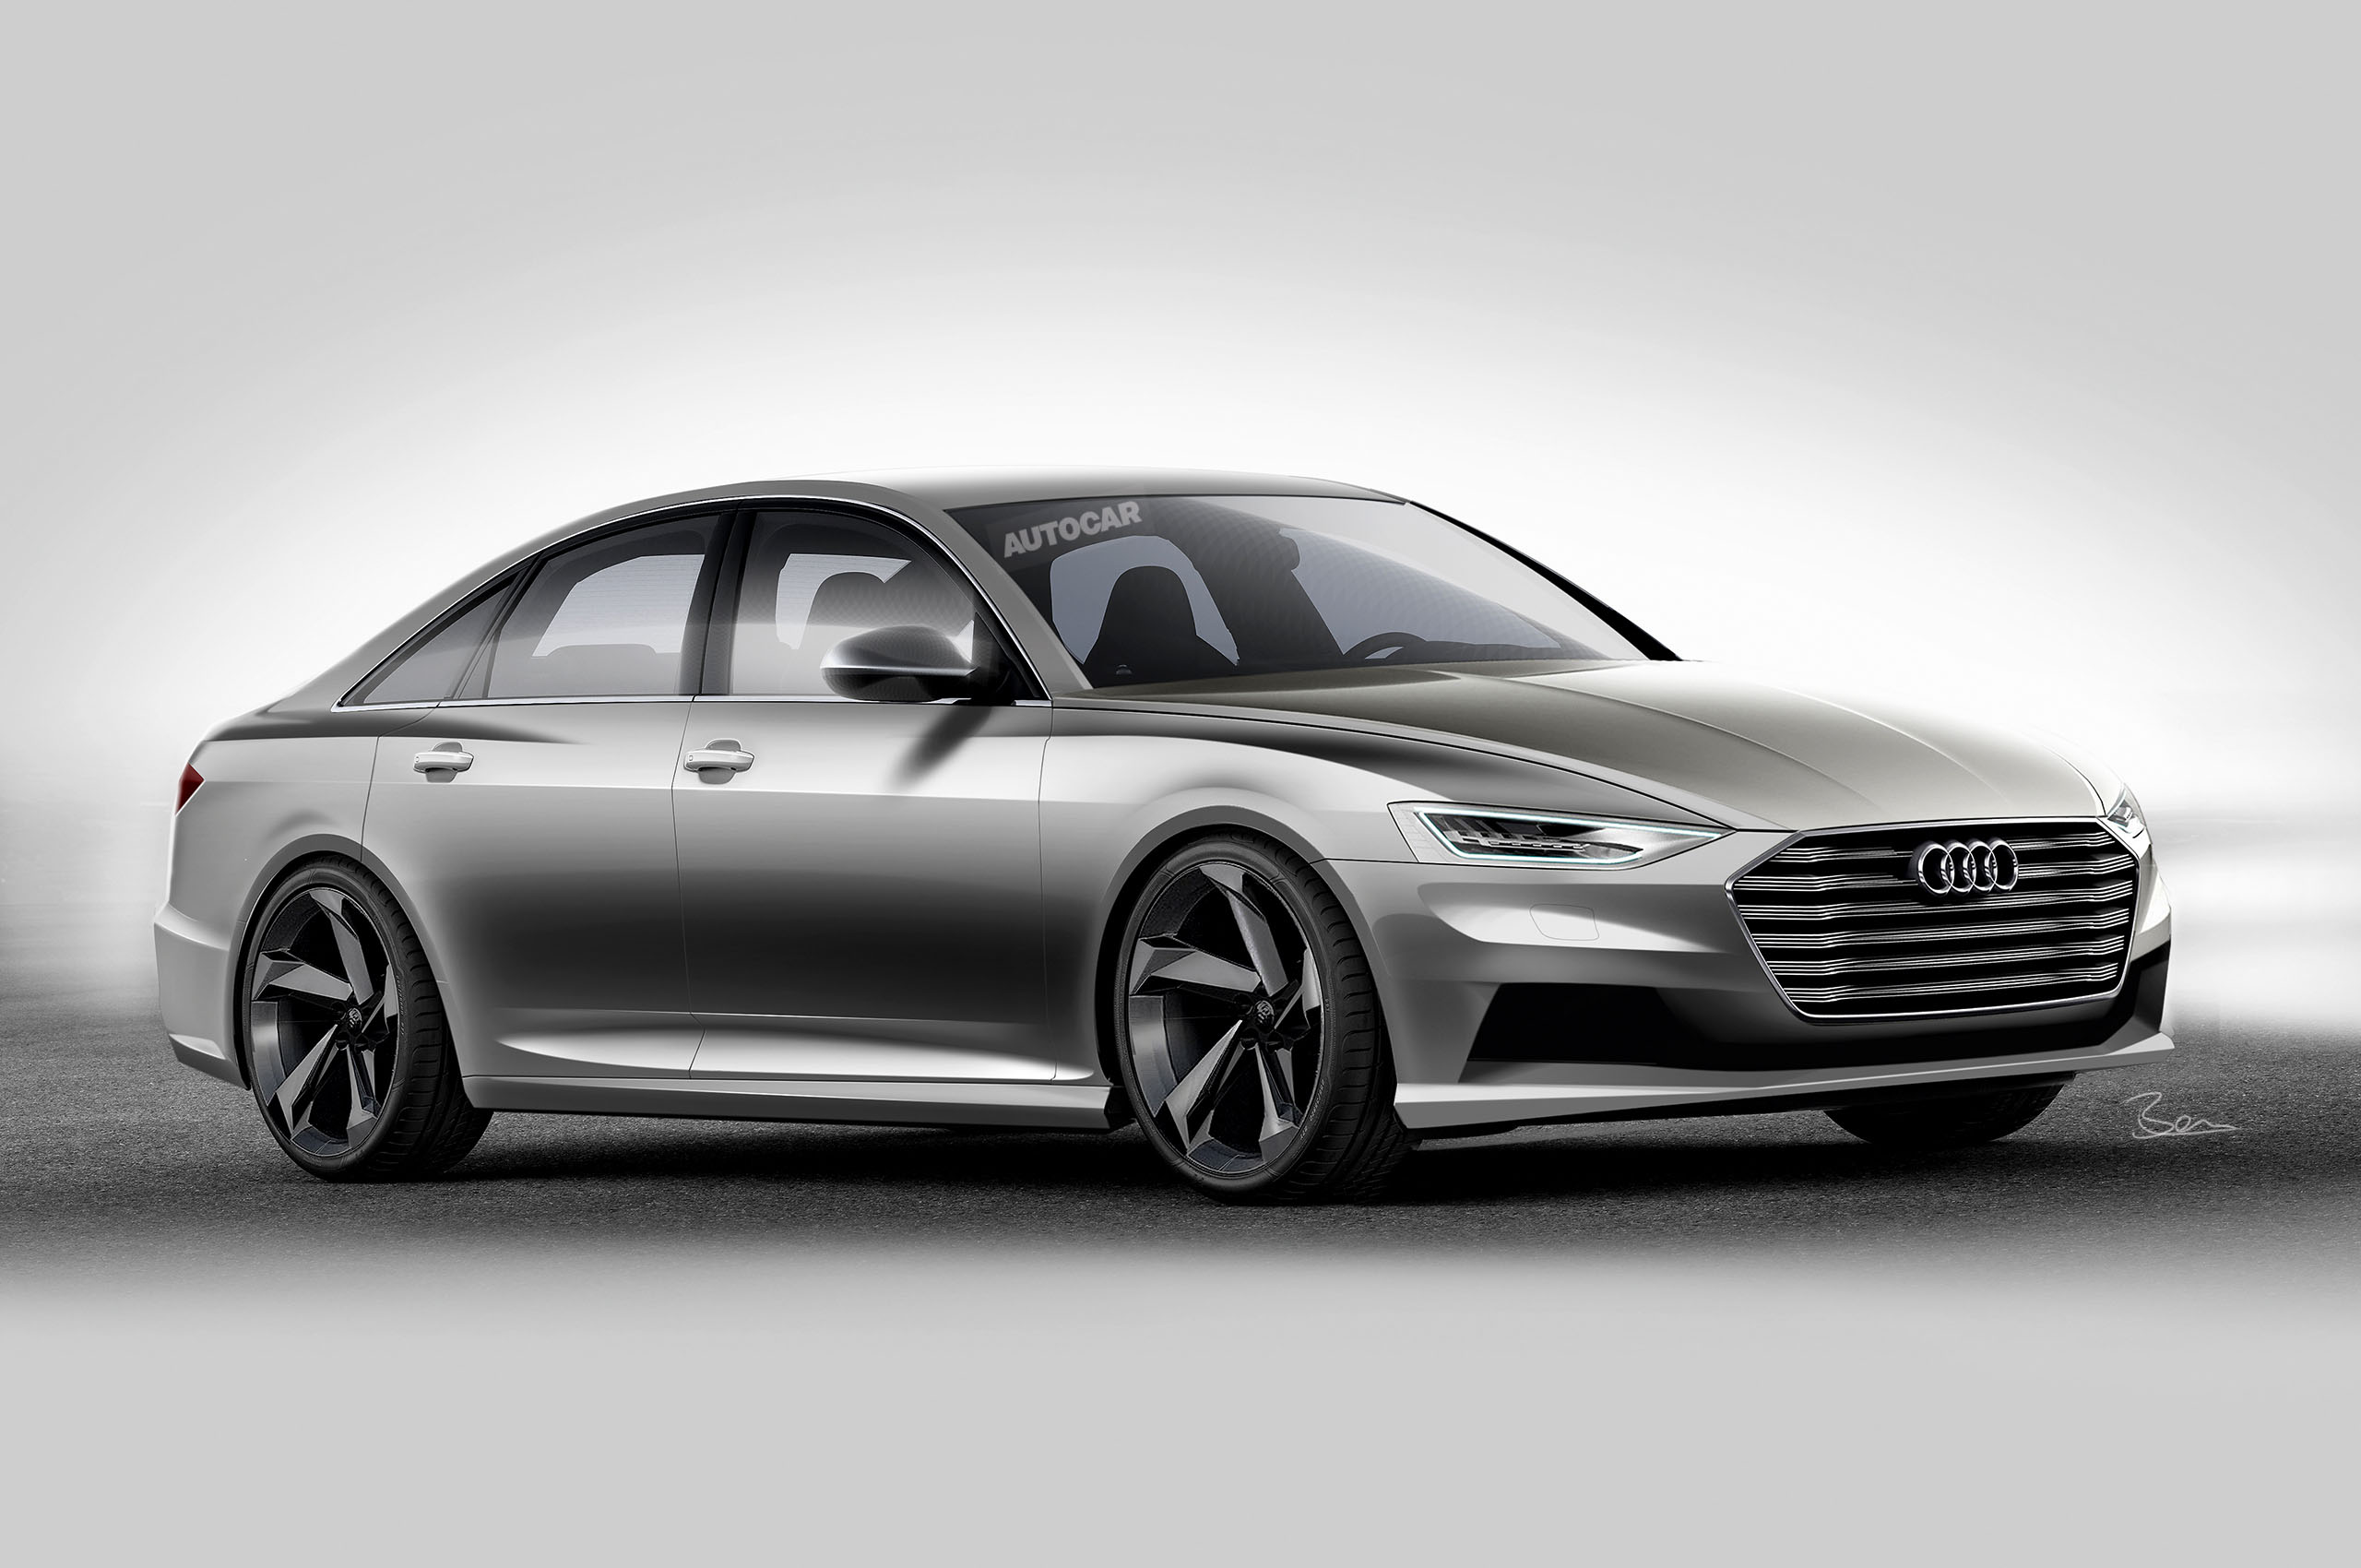 2017 Audi A6 to dramatic new look